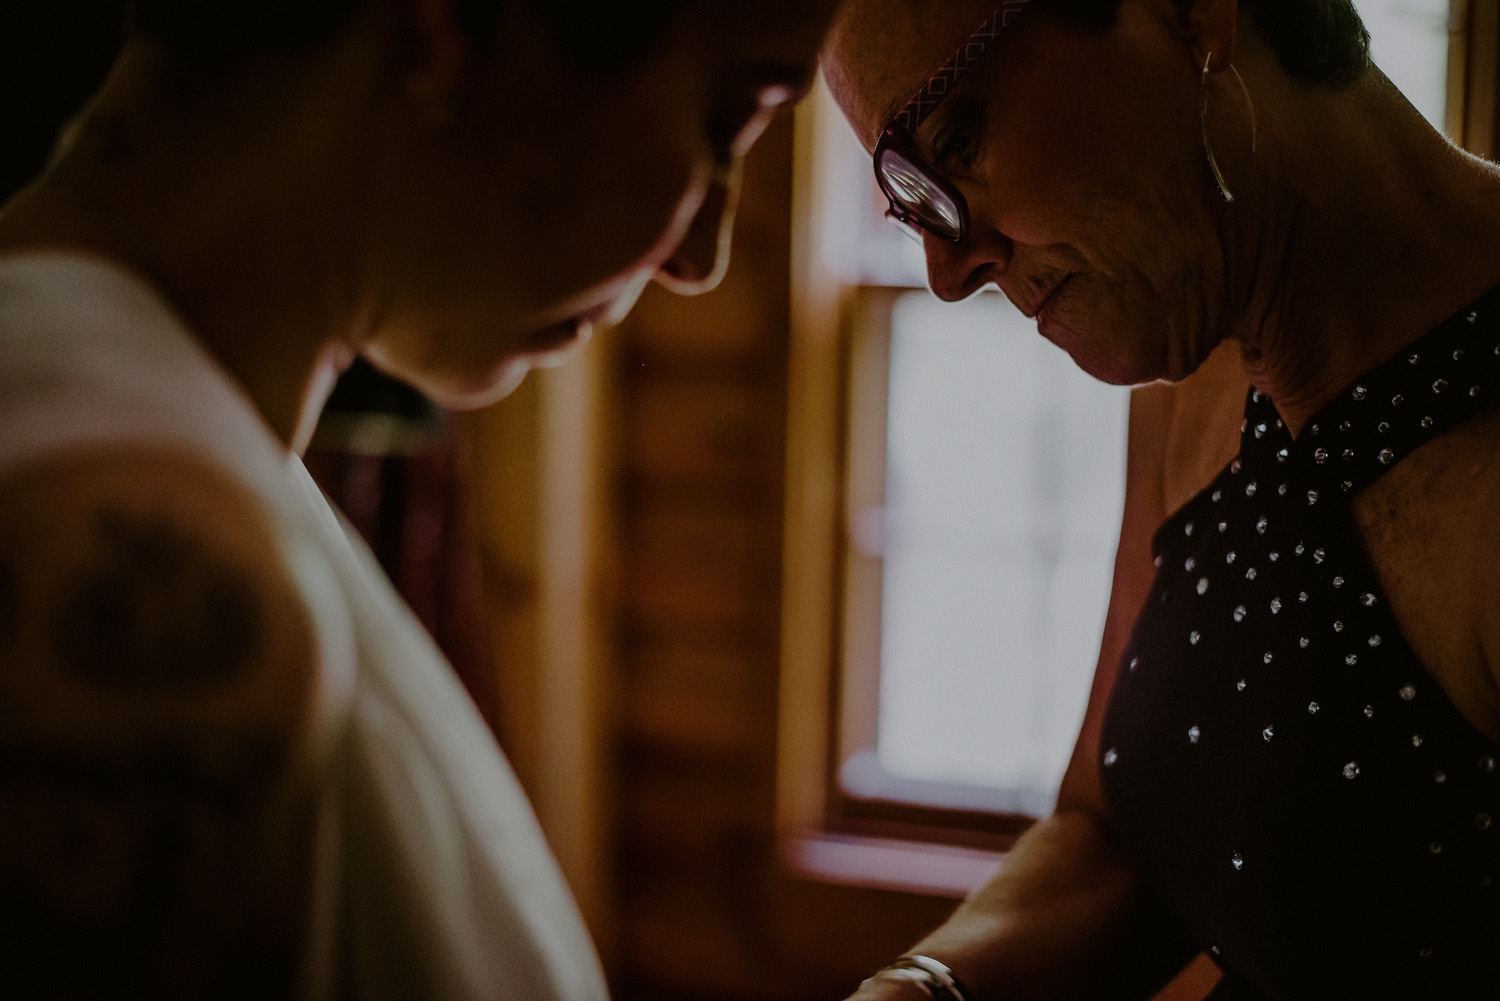 intimate wedding photos while bride gets dressed at mother's house in nj